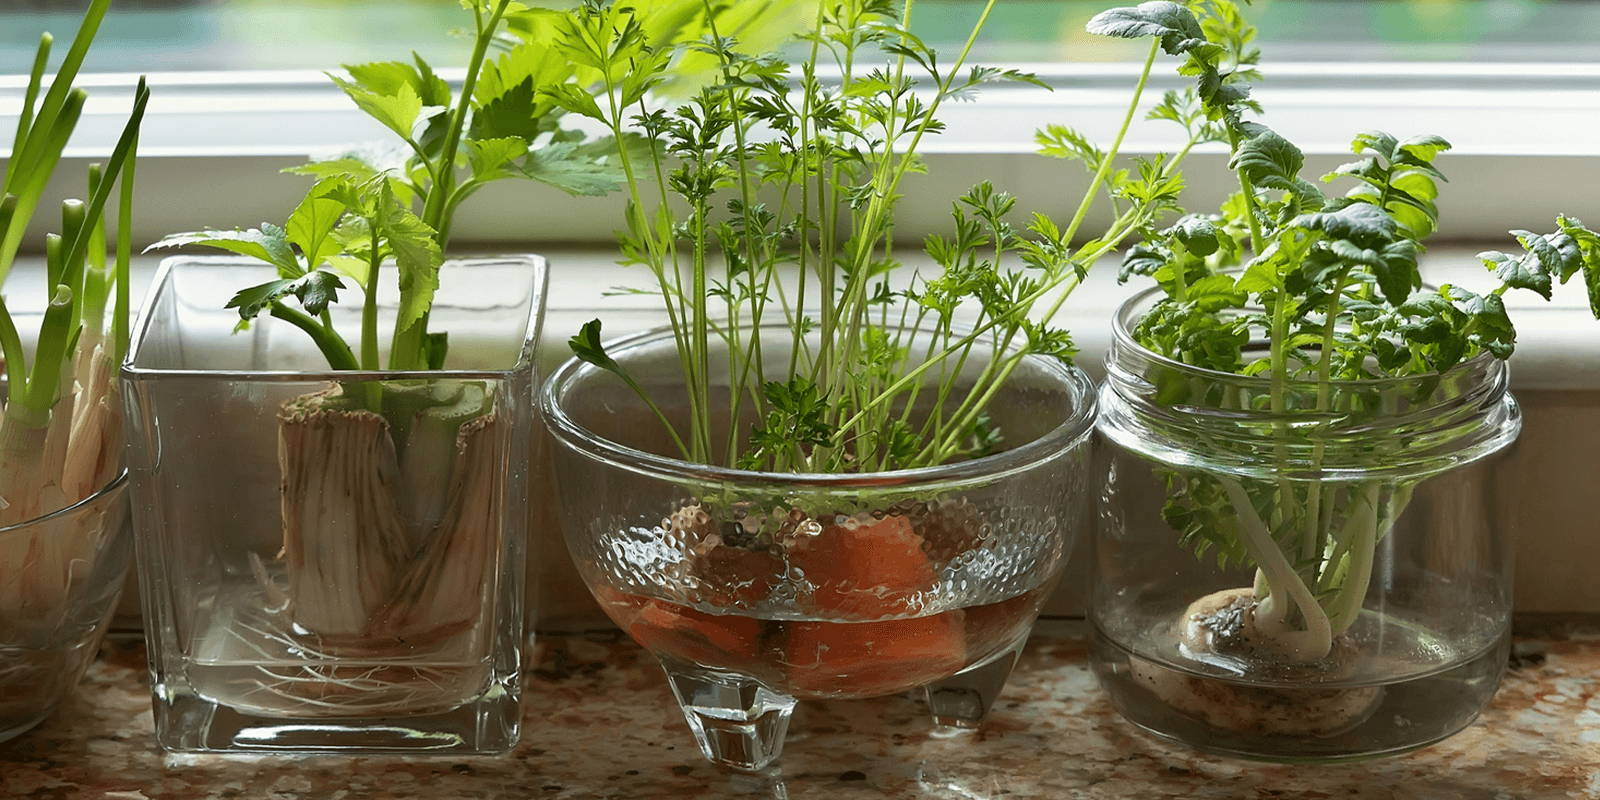 Various glass vessels on a windowsill, each regrowing different veggies. The center glass dish holds carrot tops regrowing in some shallow water.